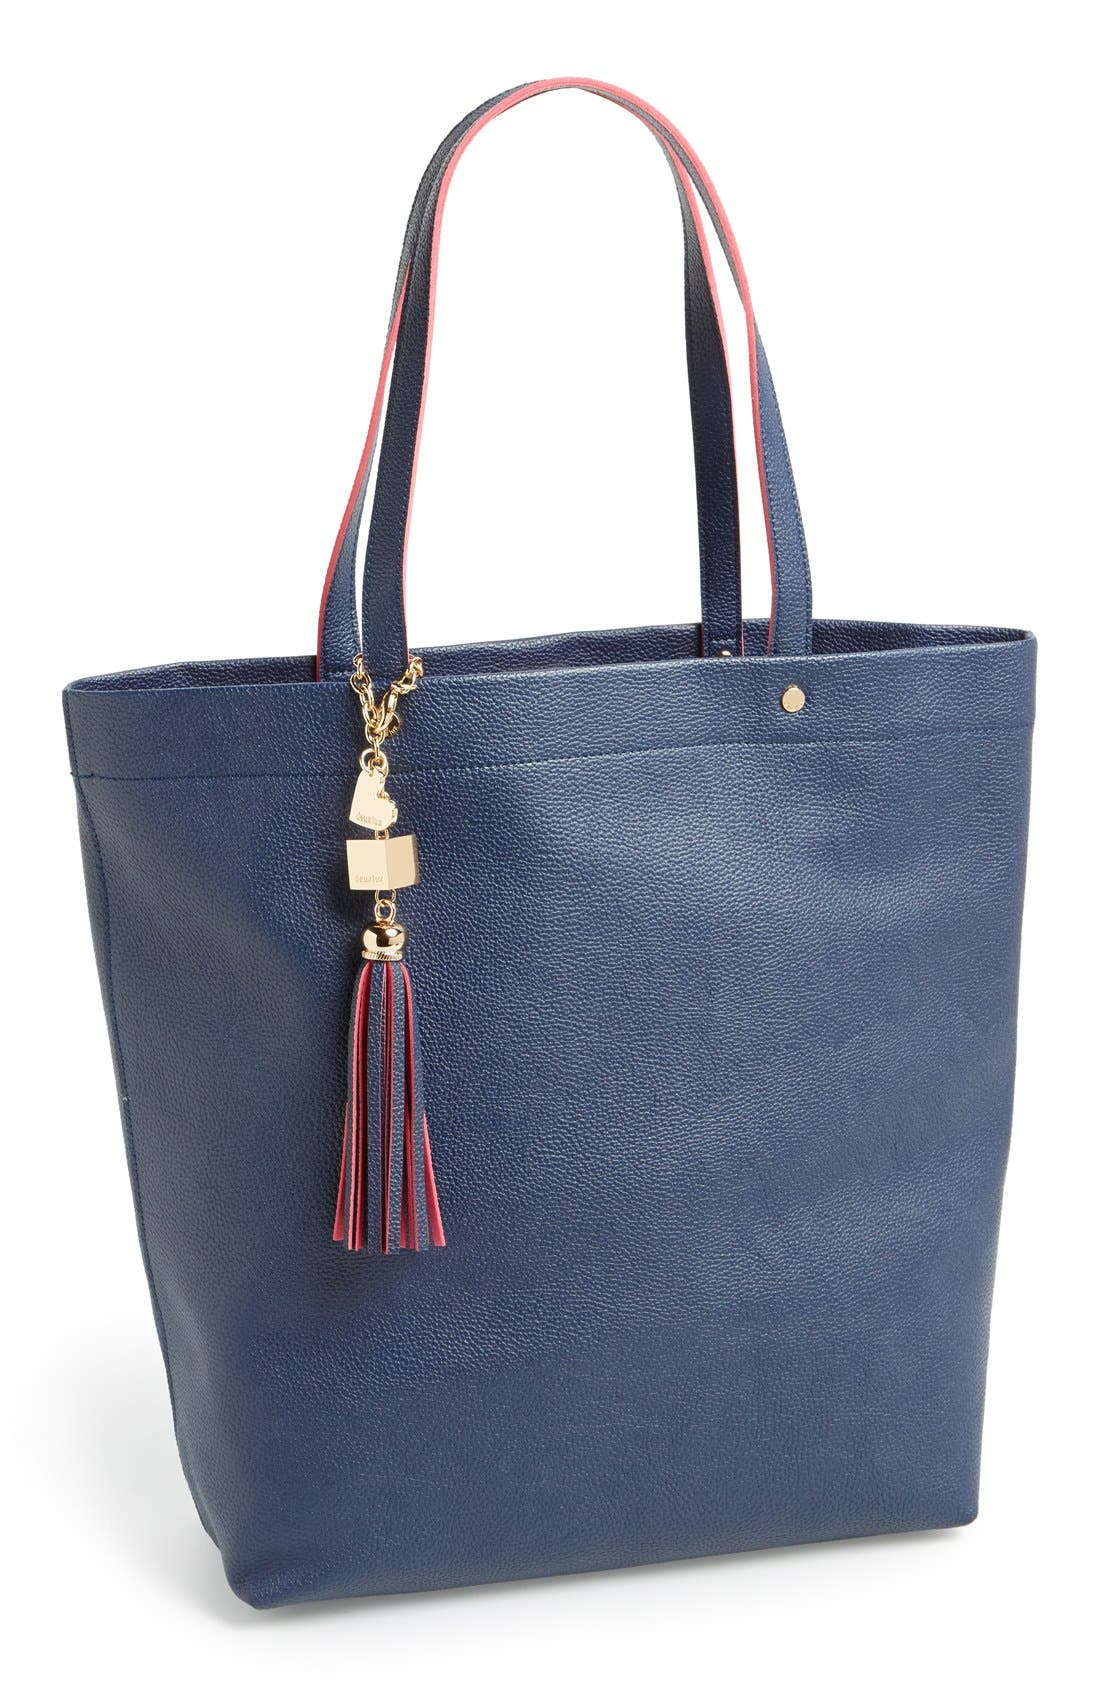 Alternate Image 1 Selected - Deux Lux 'Elle' Tote